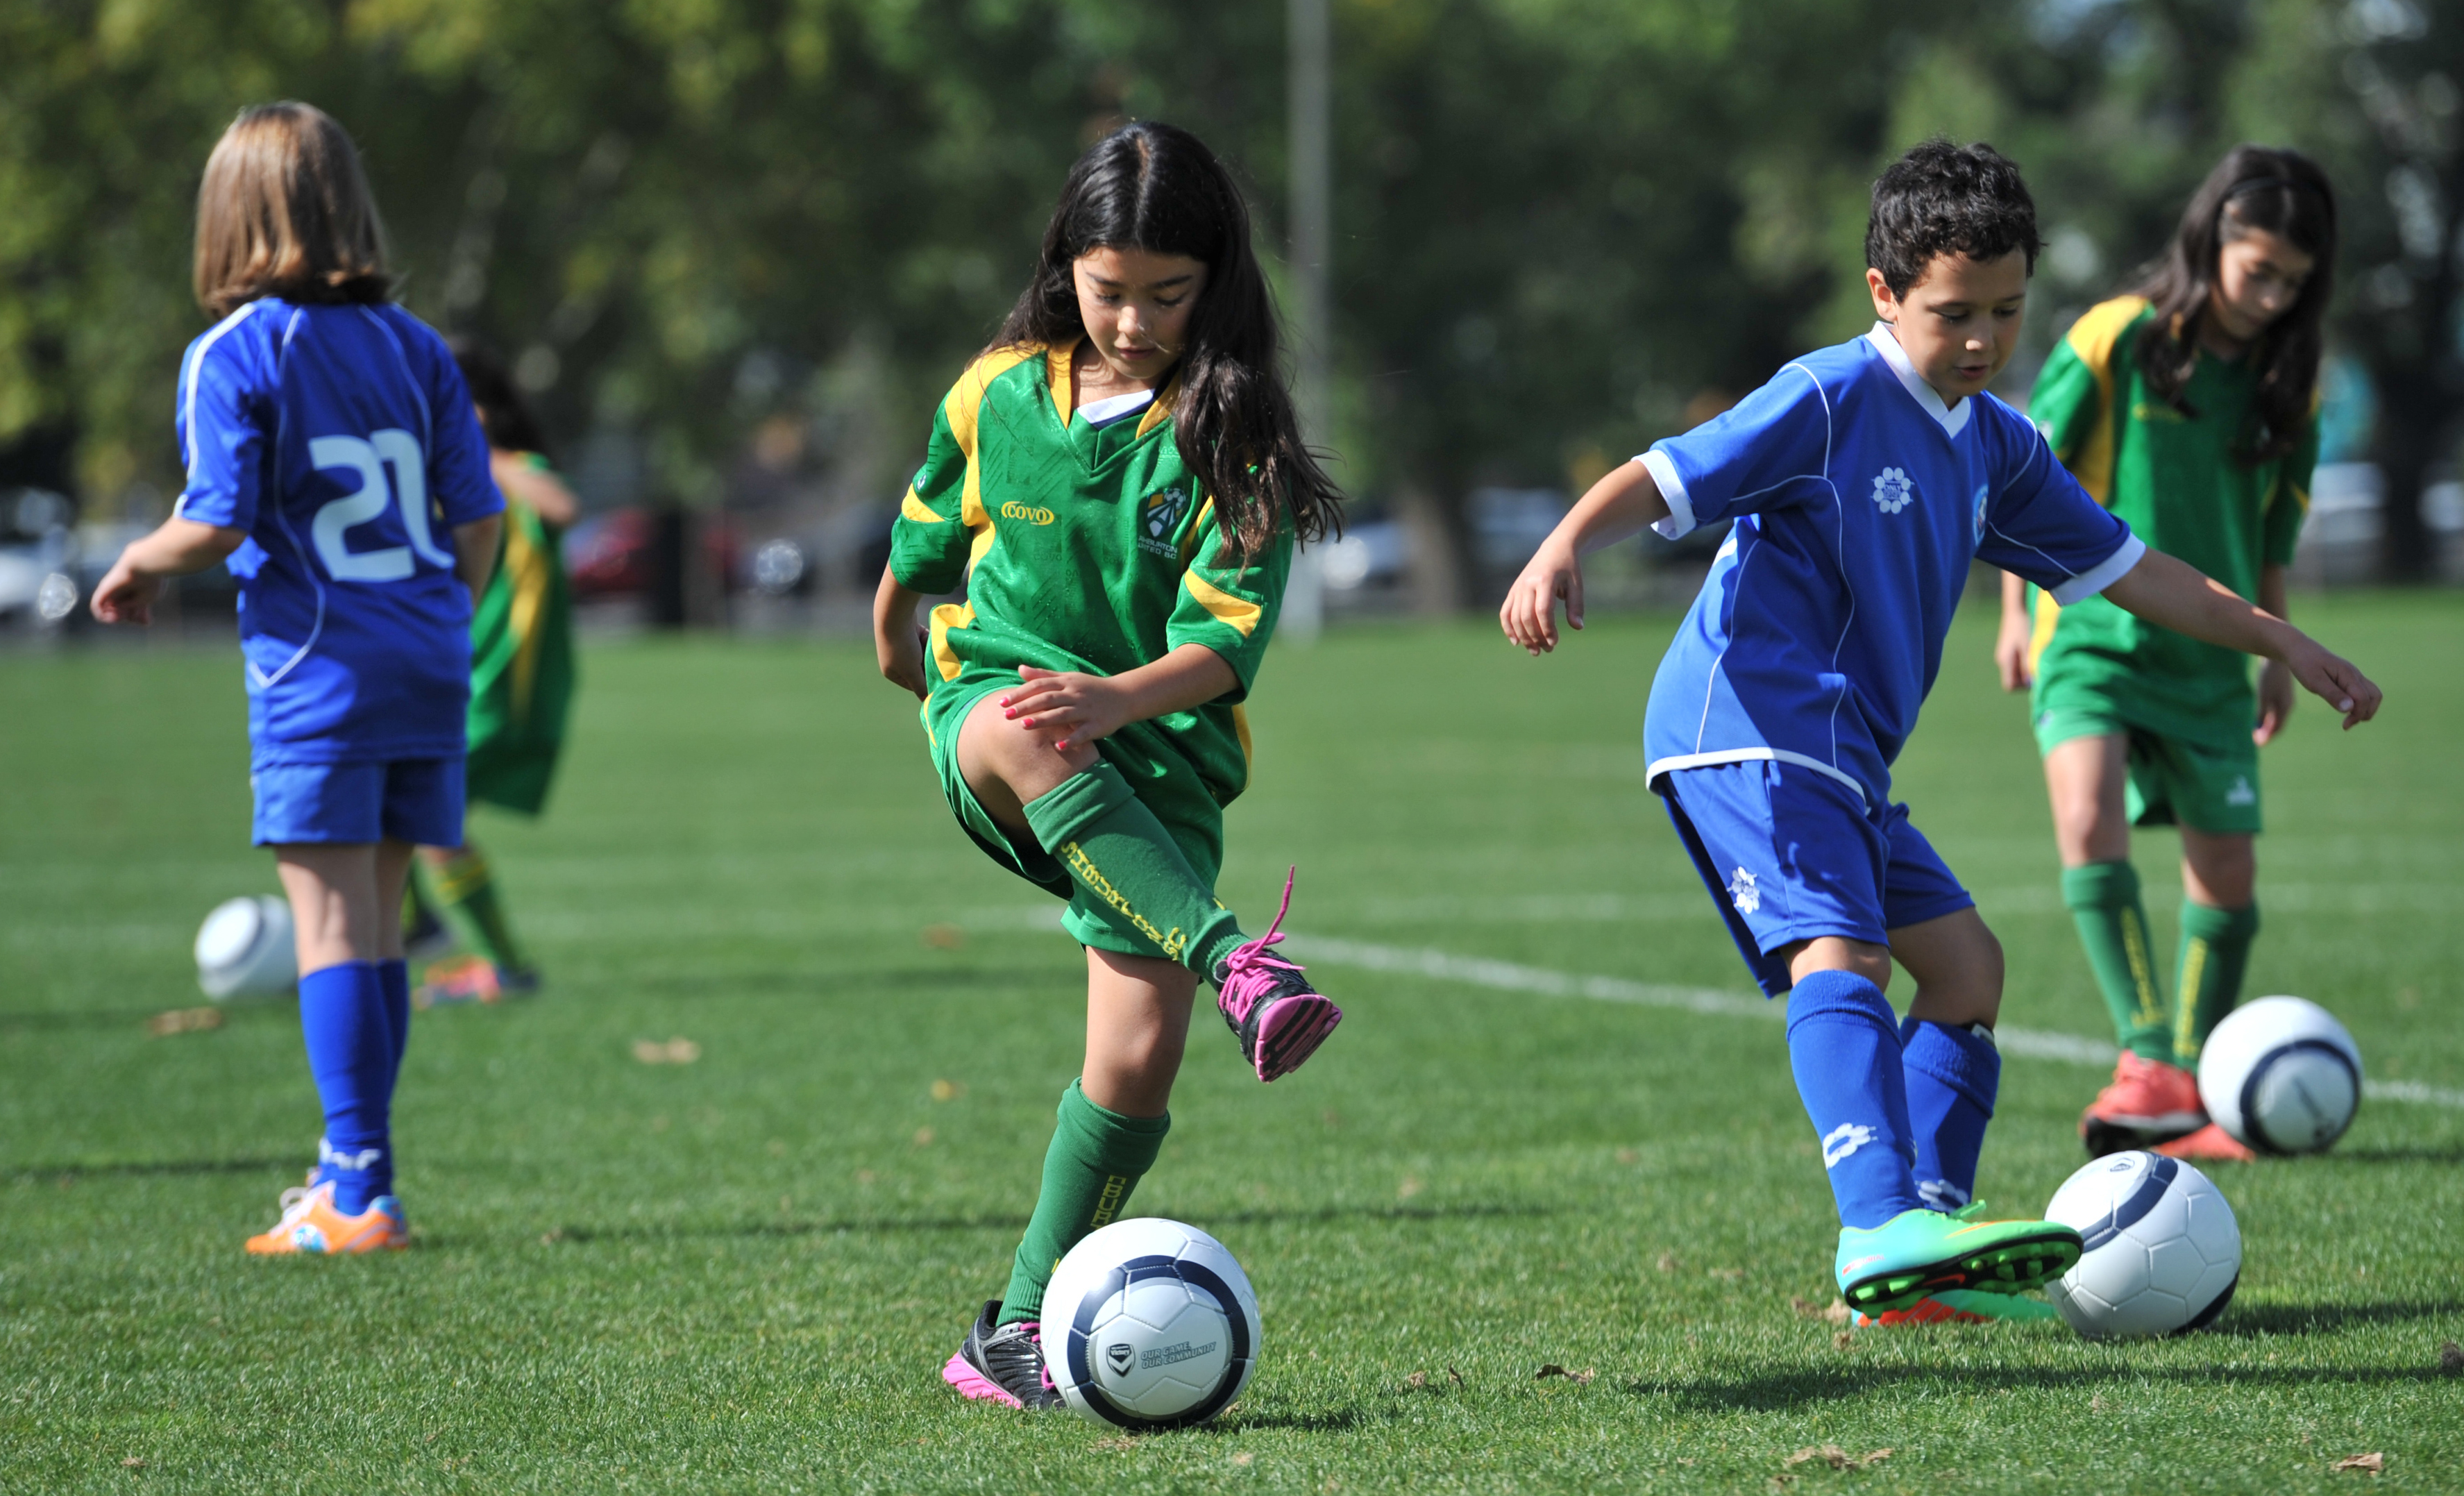 Sports Industry and Children's Welfare